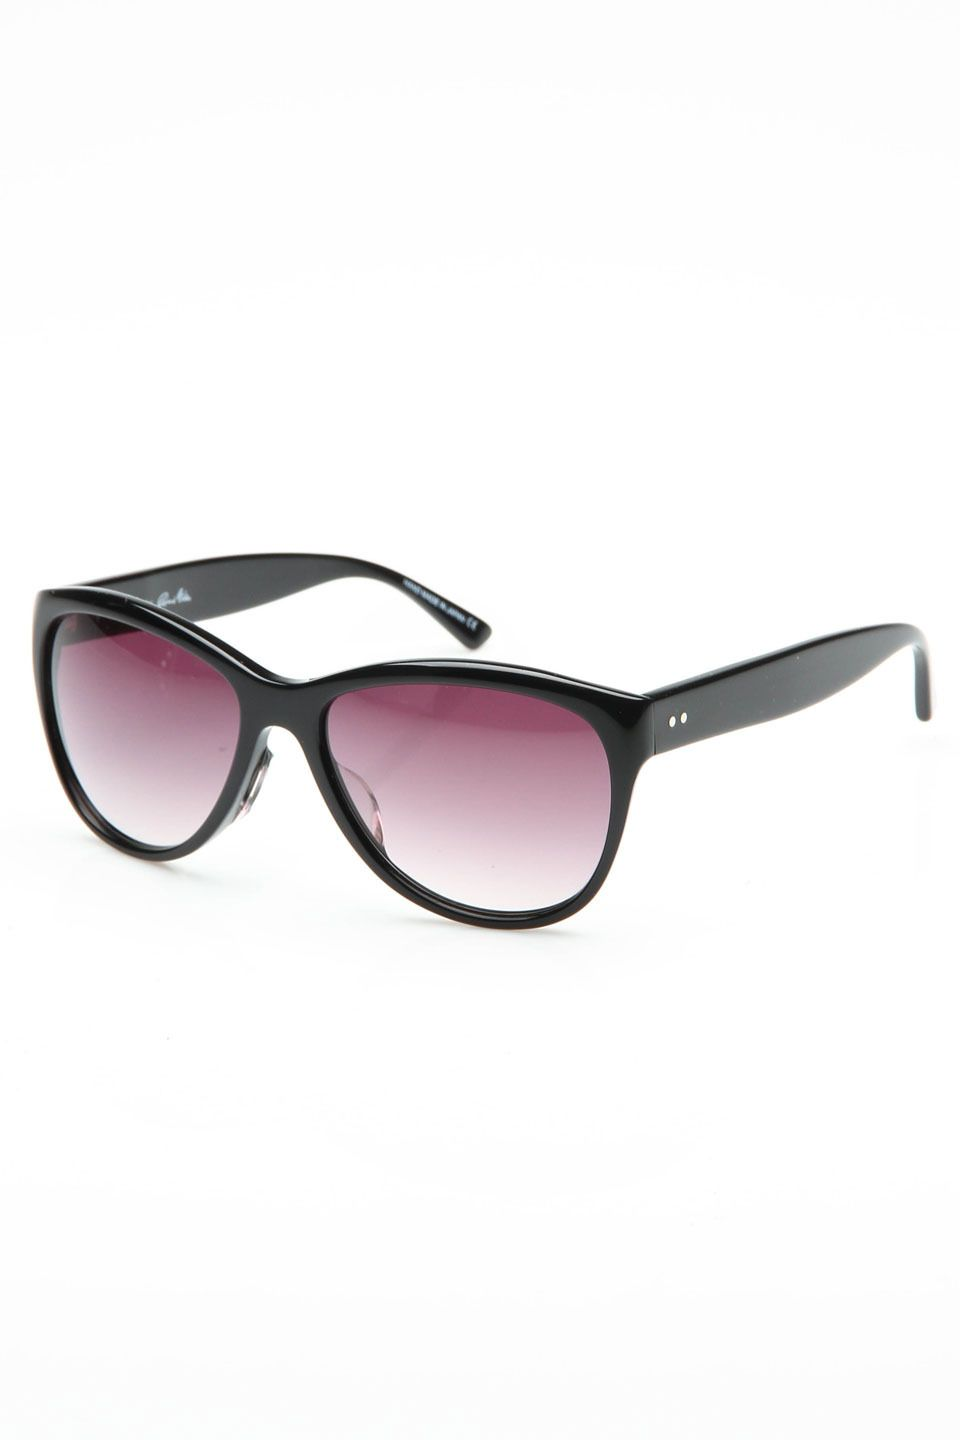 850a8c797ba Blinde Routine Sunglasses In Black